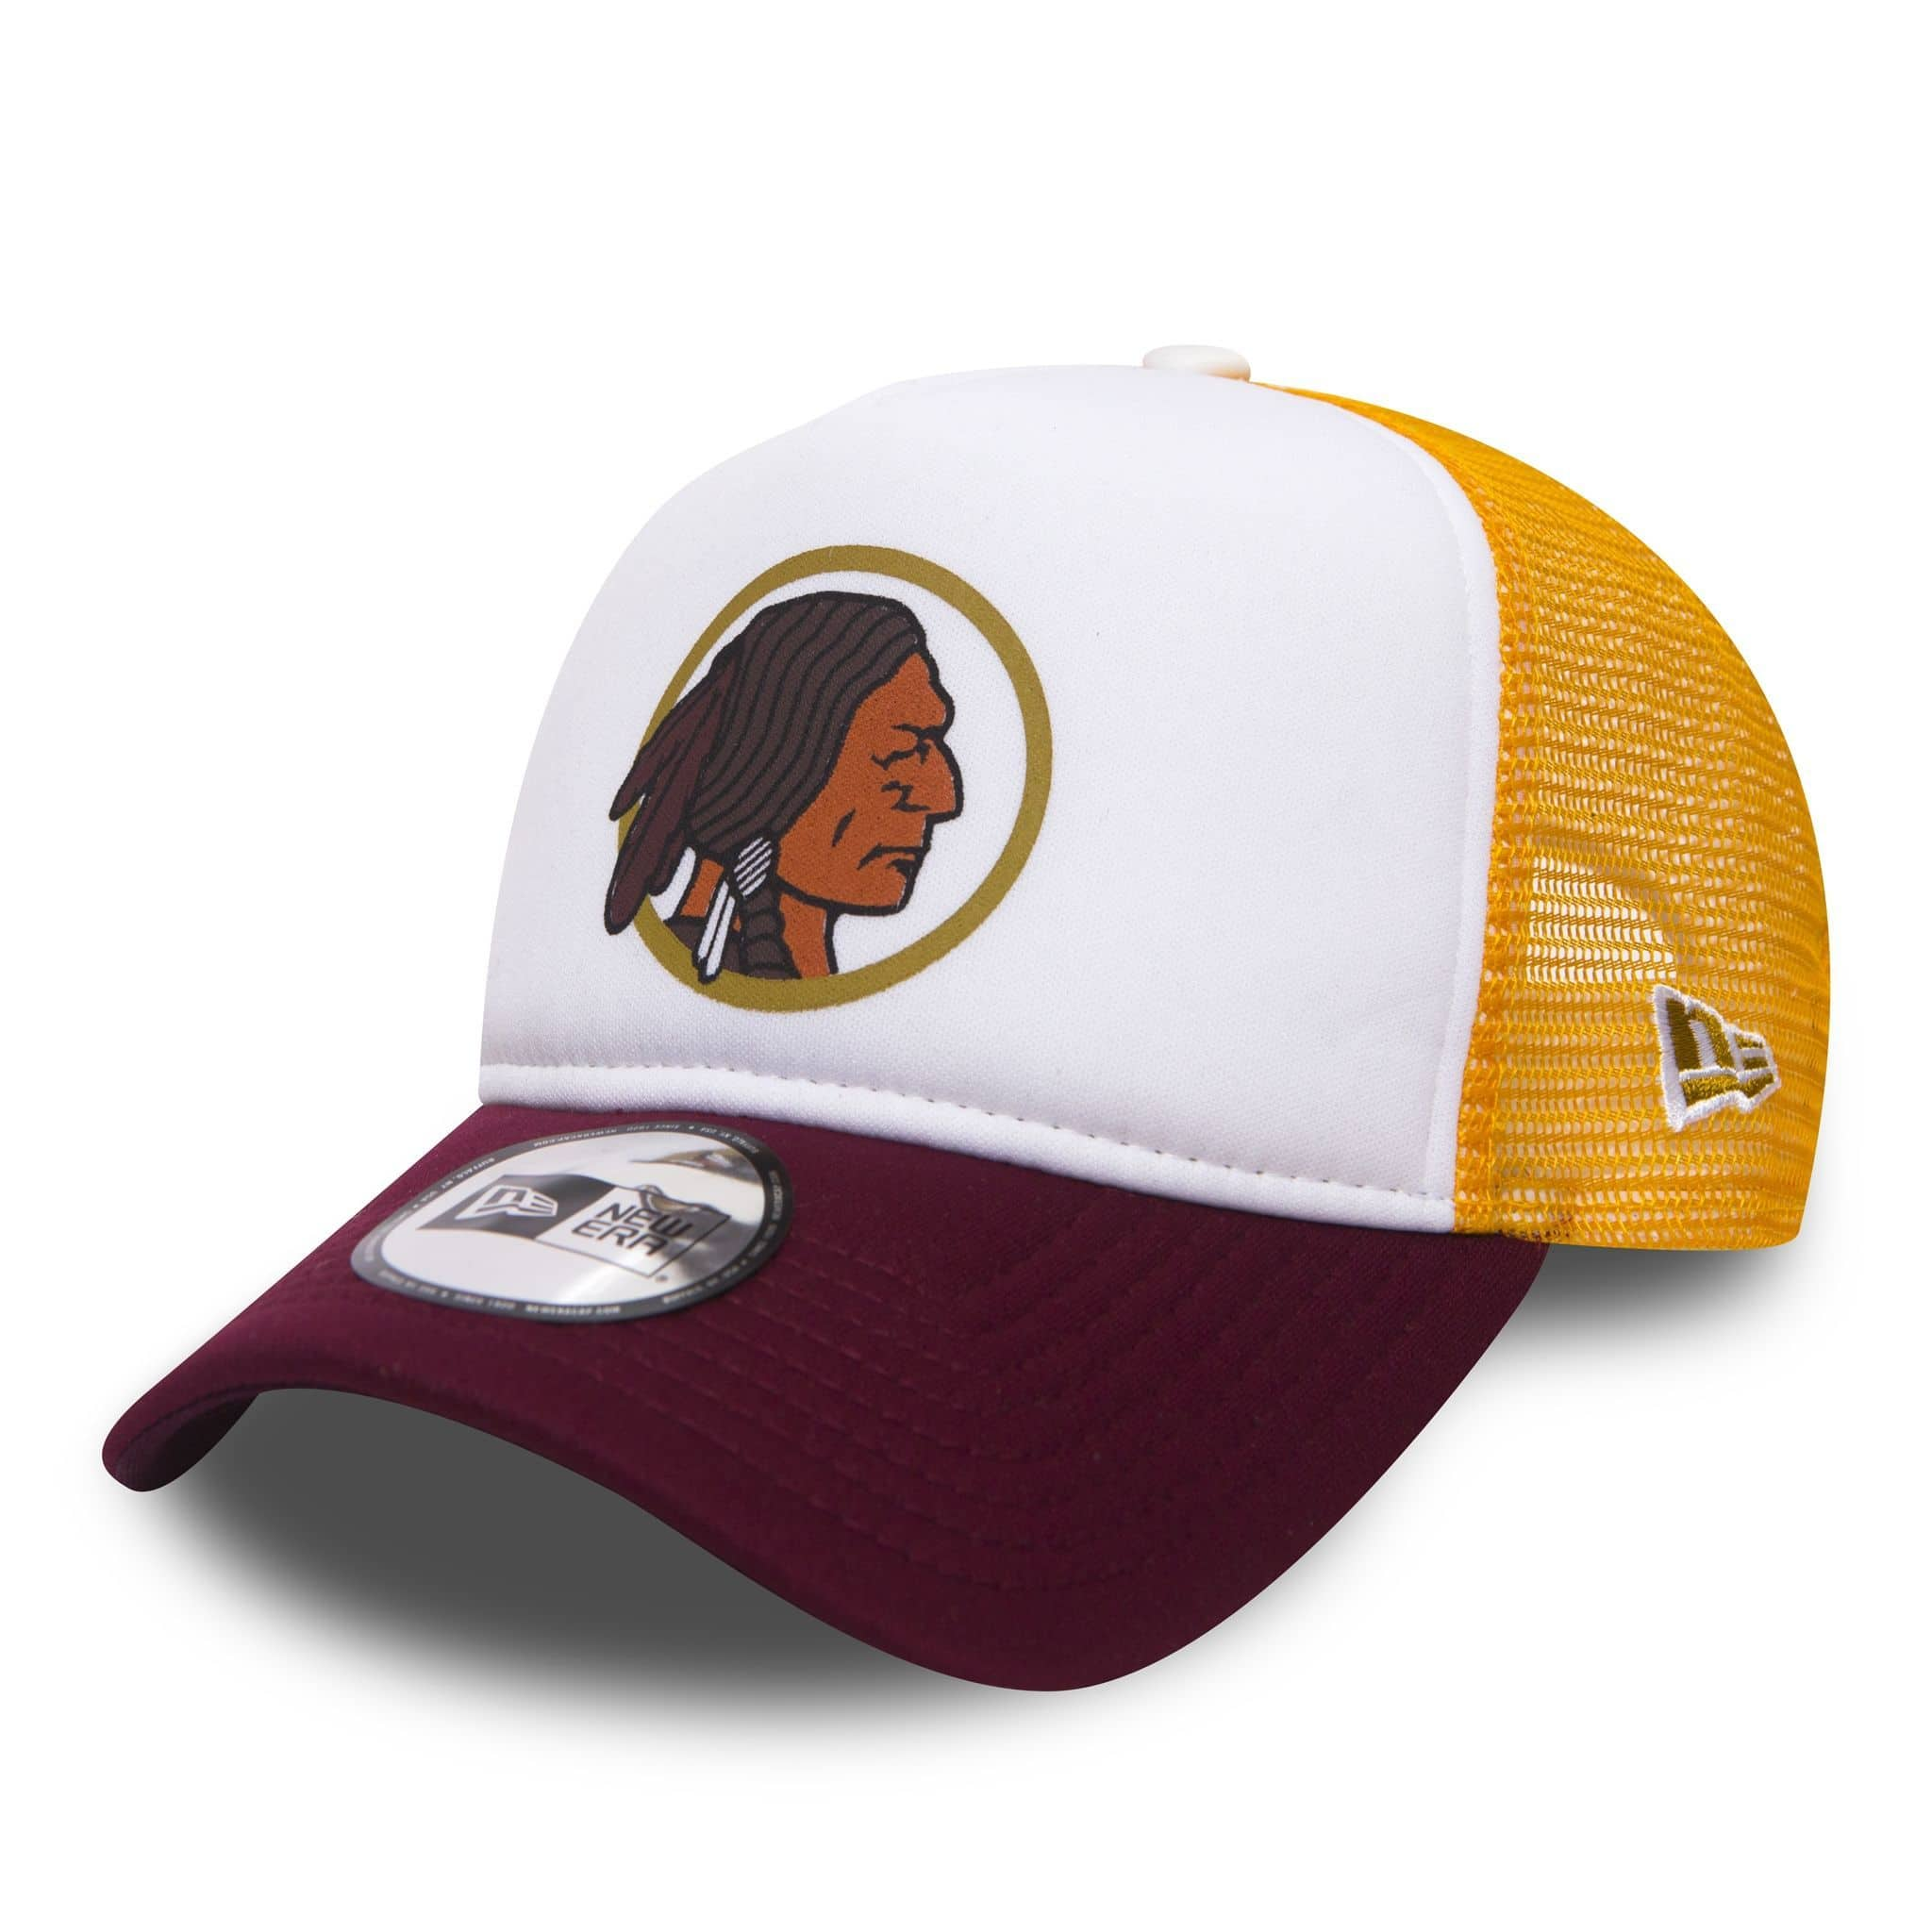 0ab6d5c0 New Era Washington Redskins Throwback Trucker Adjustable NFL Cap |  TAASS.com Fan Shop